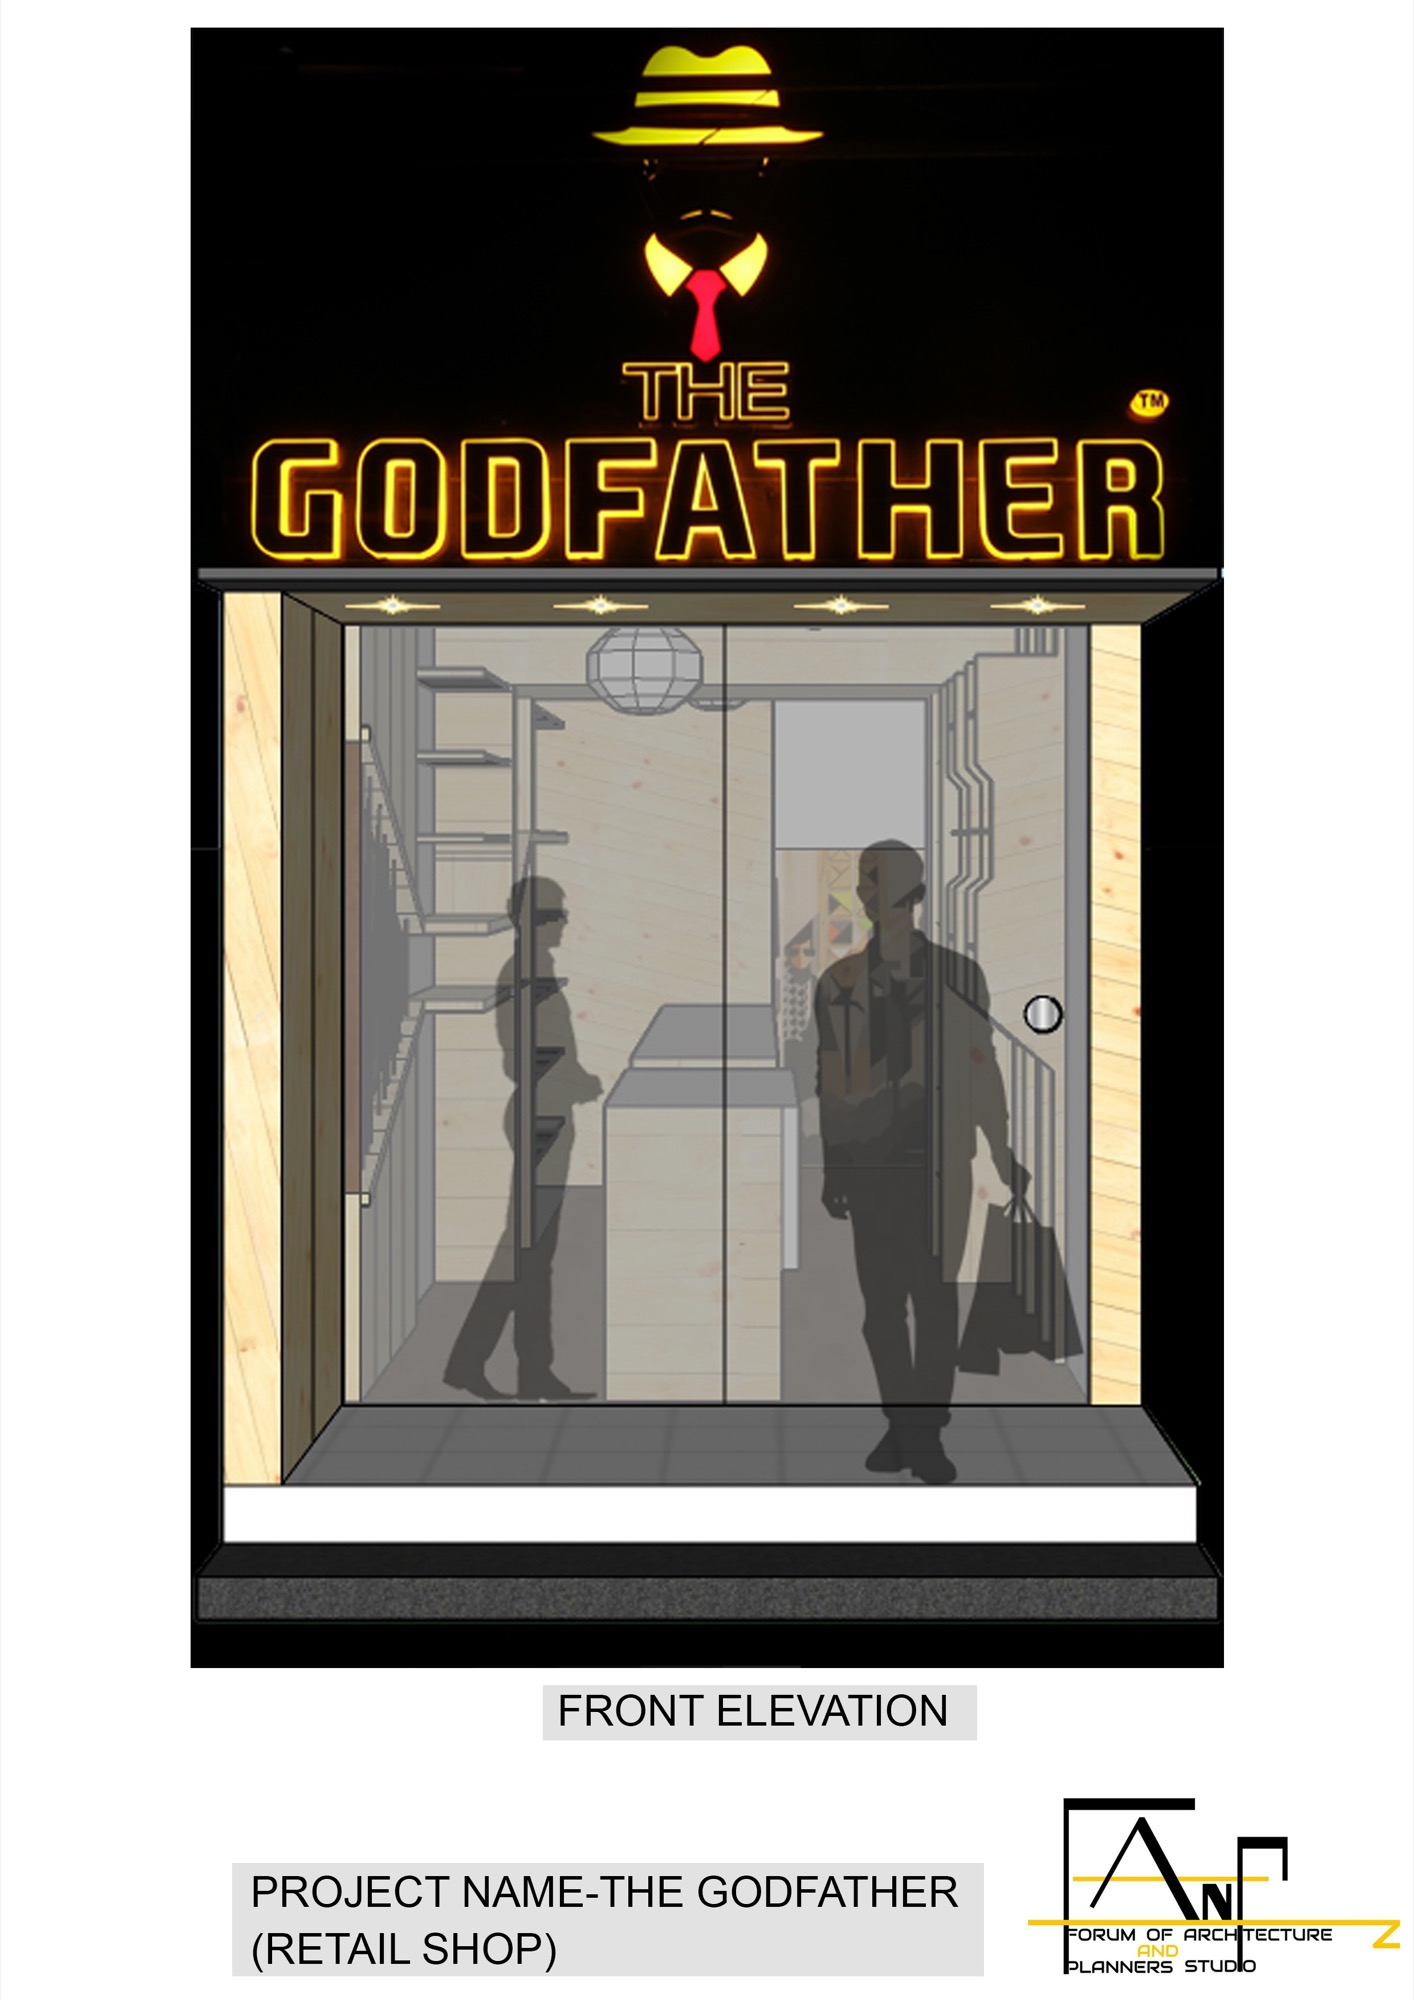 The Godfather Fashion Store at Nagpur, by The Forum of Architecture And Planners Studio (FANP STUDIO) 9